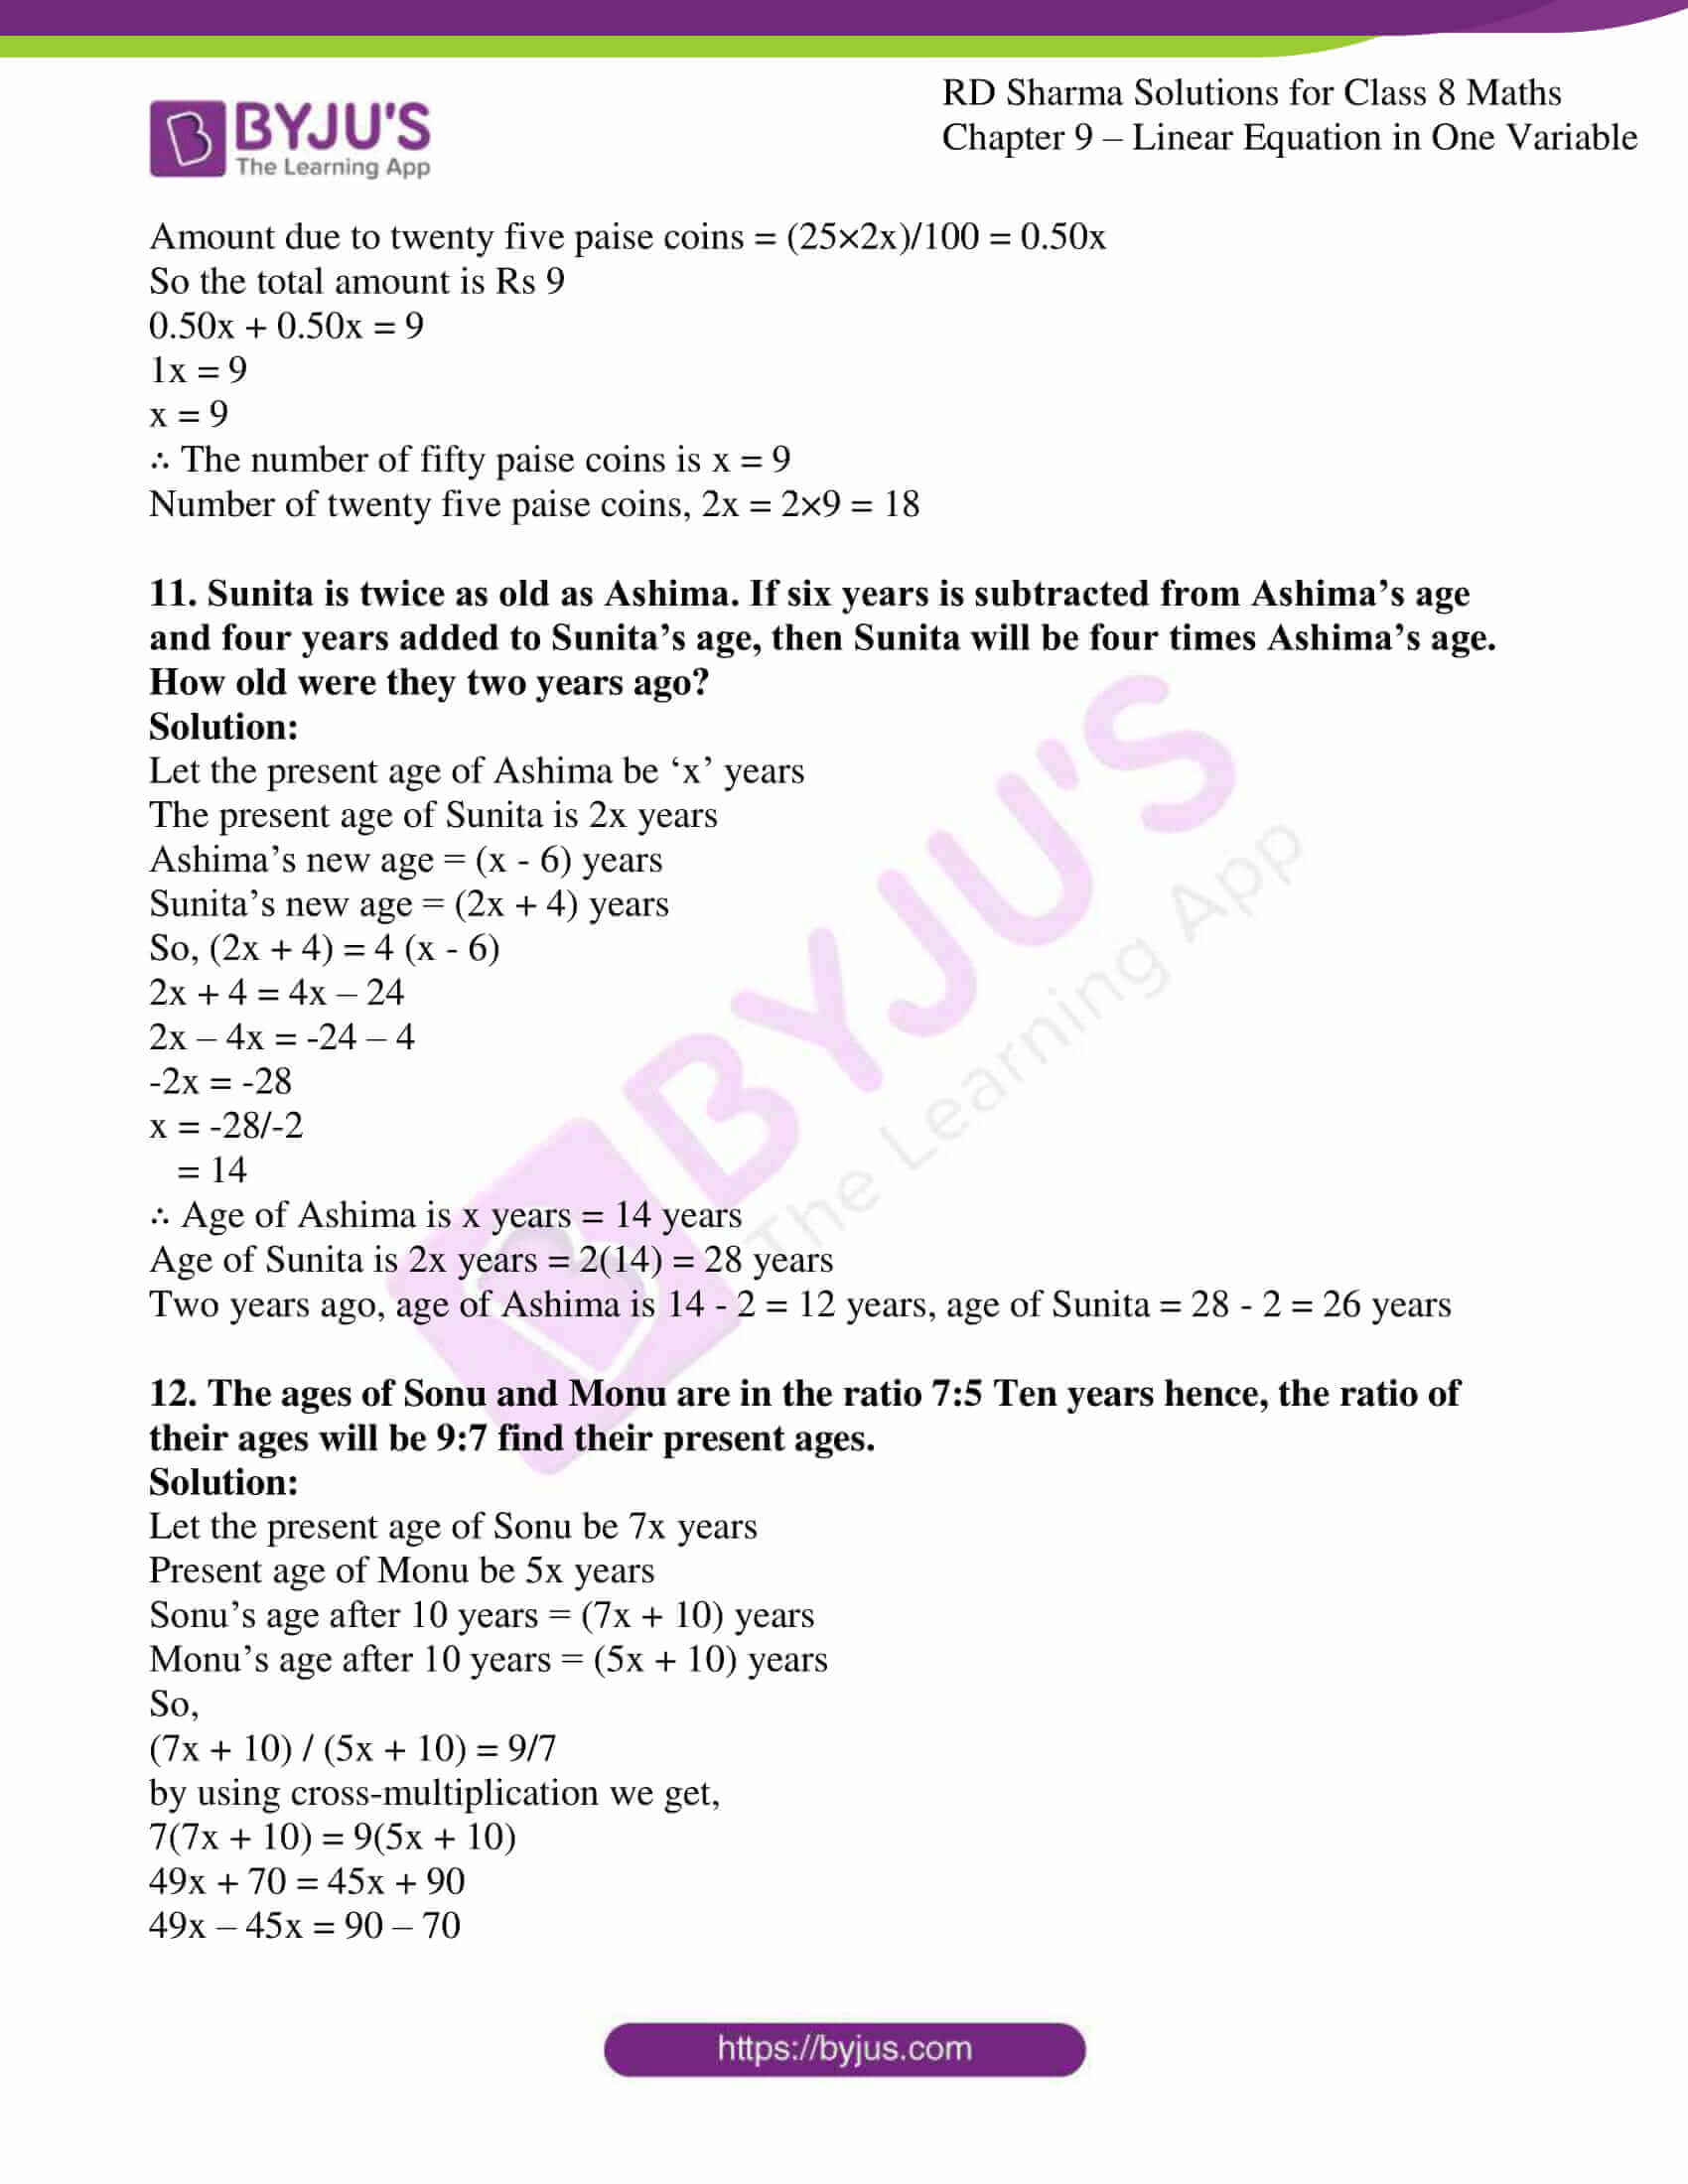 rd sharma class 8 maths chapter 9 exercise 4 05